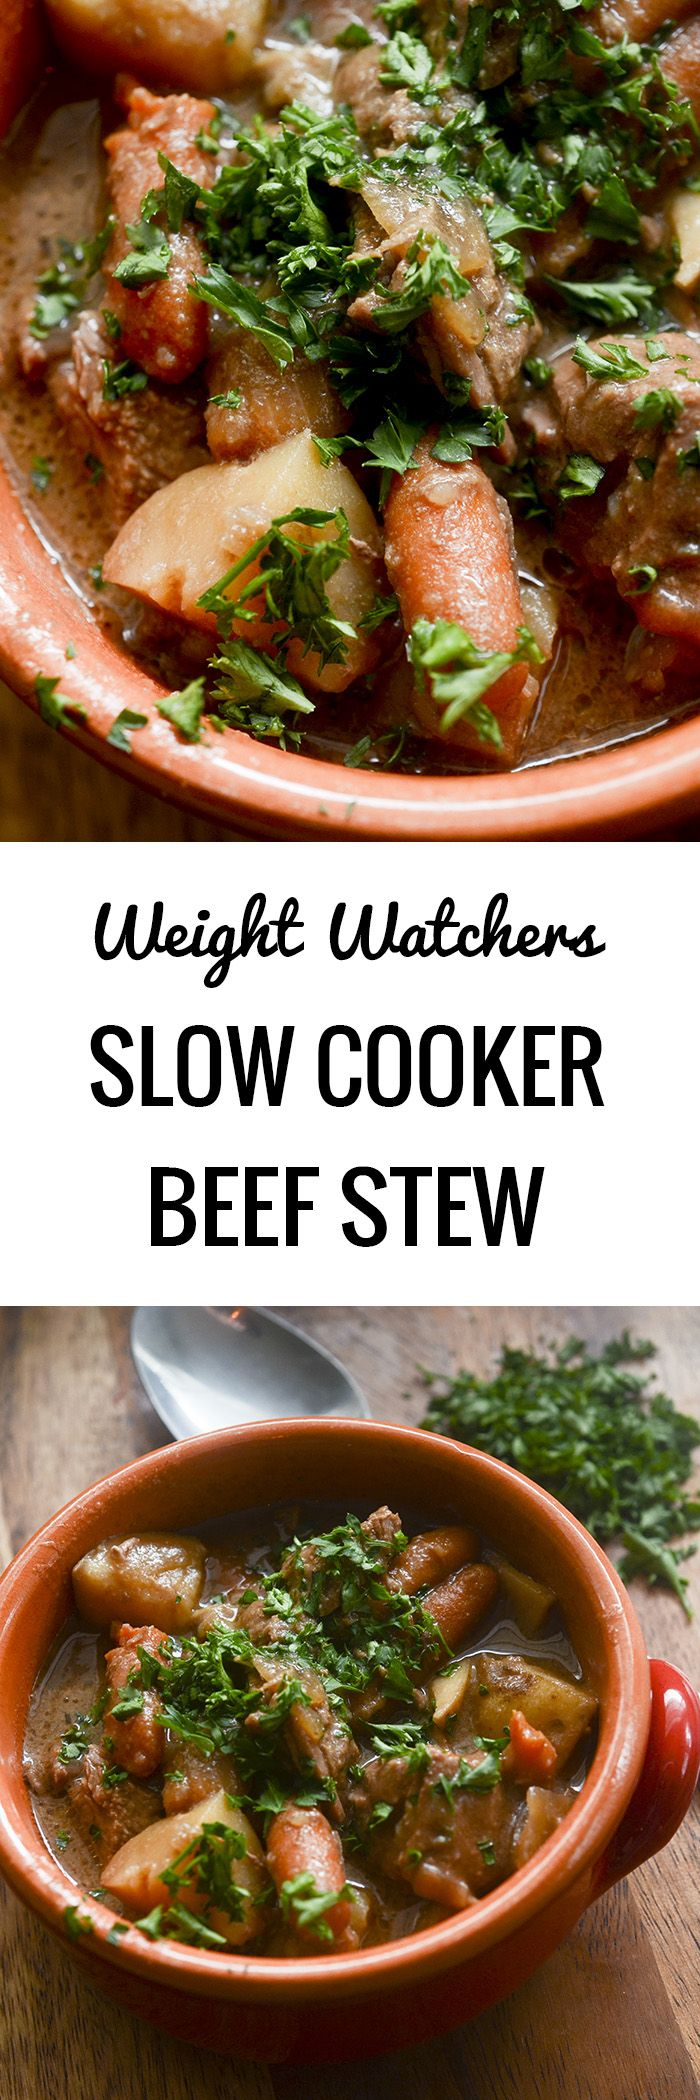 Weight Watchers Slow Cooker Beef Stew